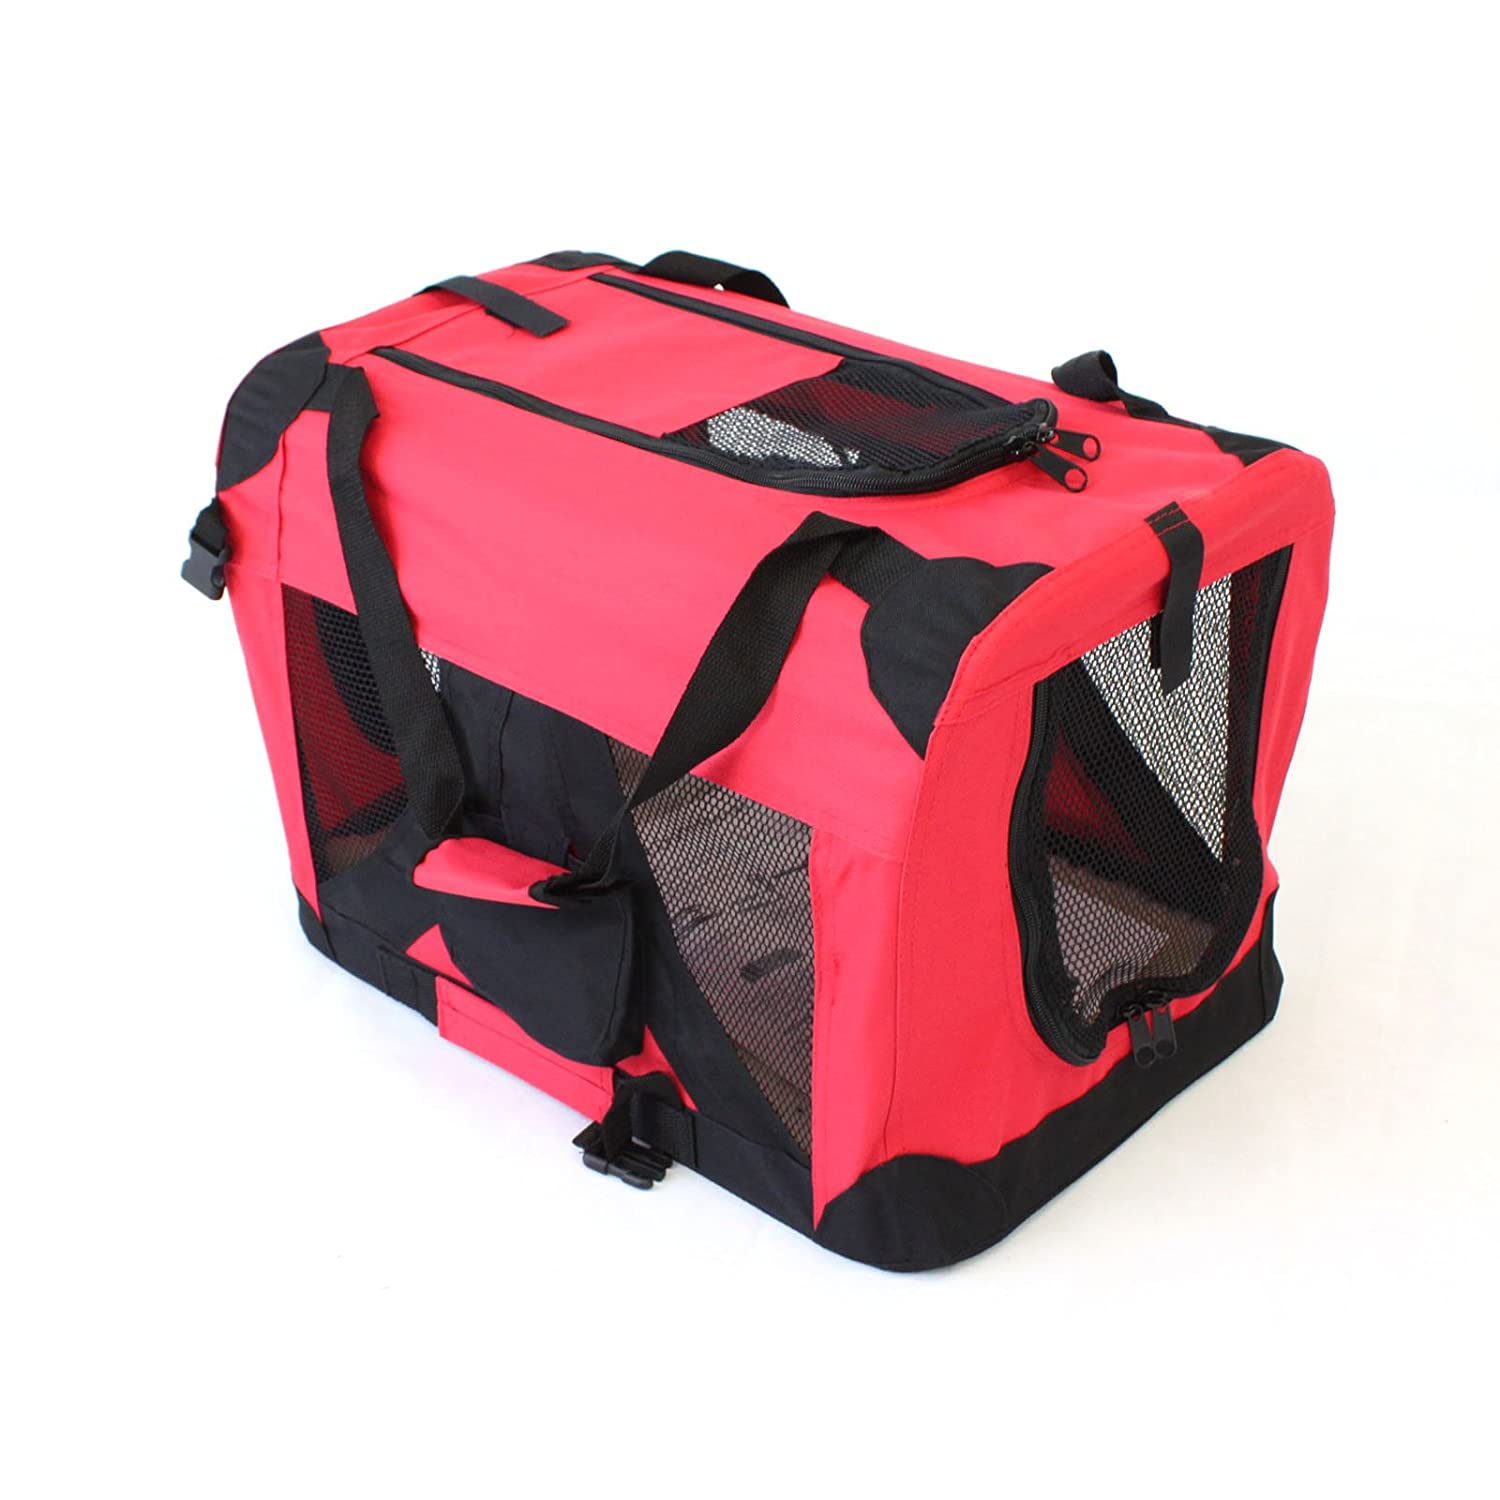 Medium 60x40cm Pet Travel Carrier Soft Crate Portable Puppy Dog Cat Kitten Cage Kennel Home House Red (Medium 60x40cm)